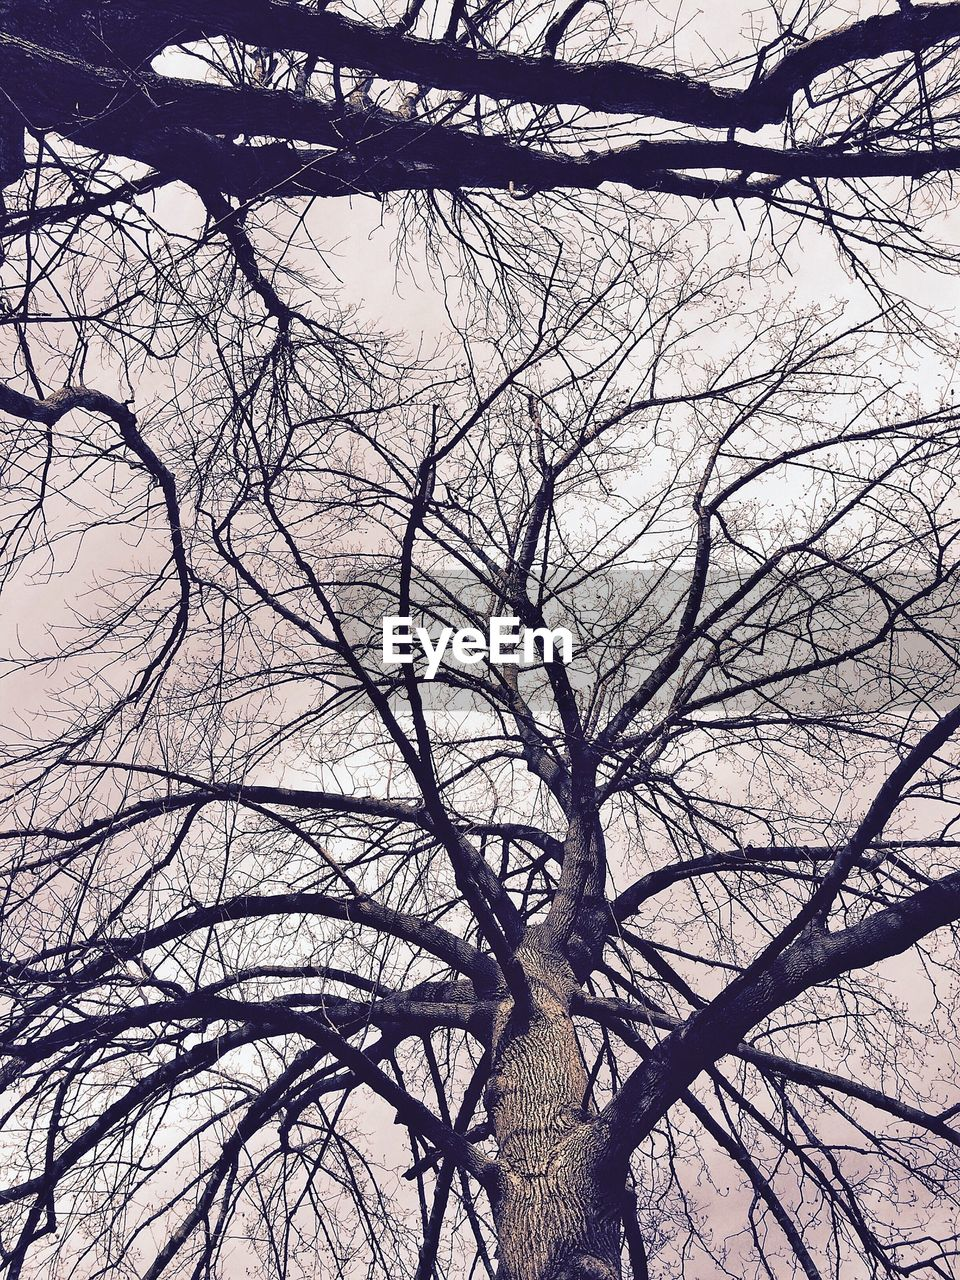 bare tree, branch, tree, low angle view, nature, dead plant, no people, tree trunk, dried plant, outdoors, day, winter, beauty in nature, sky, dead tree